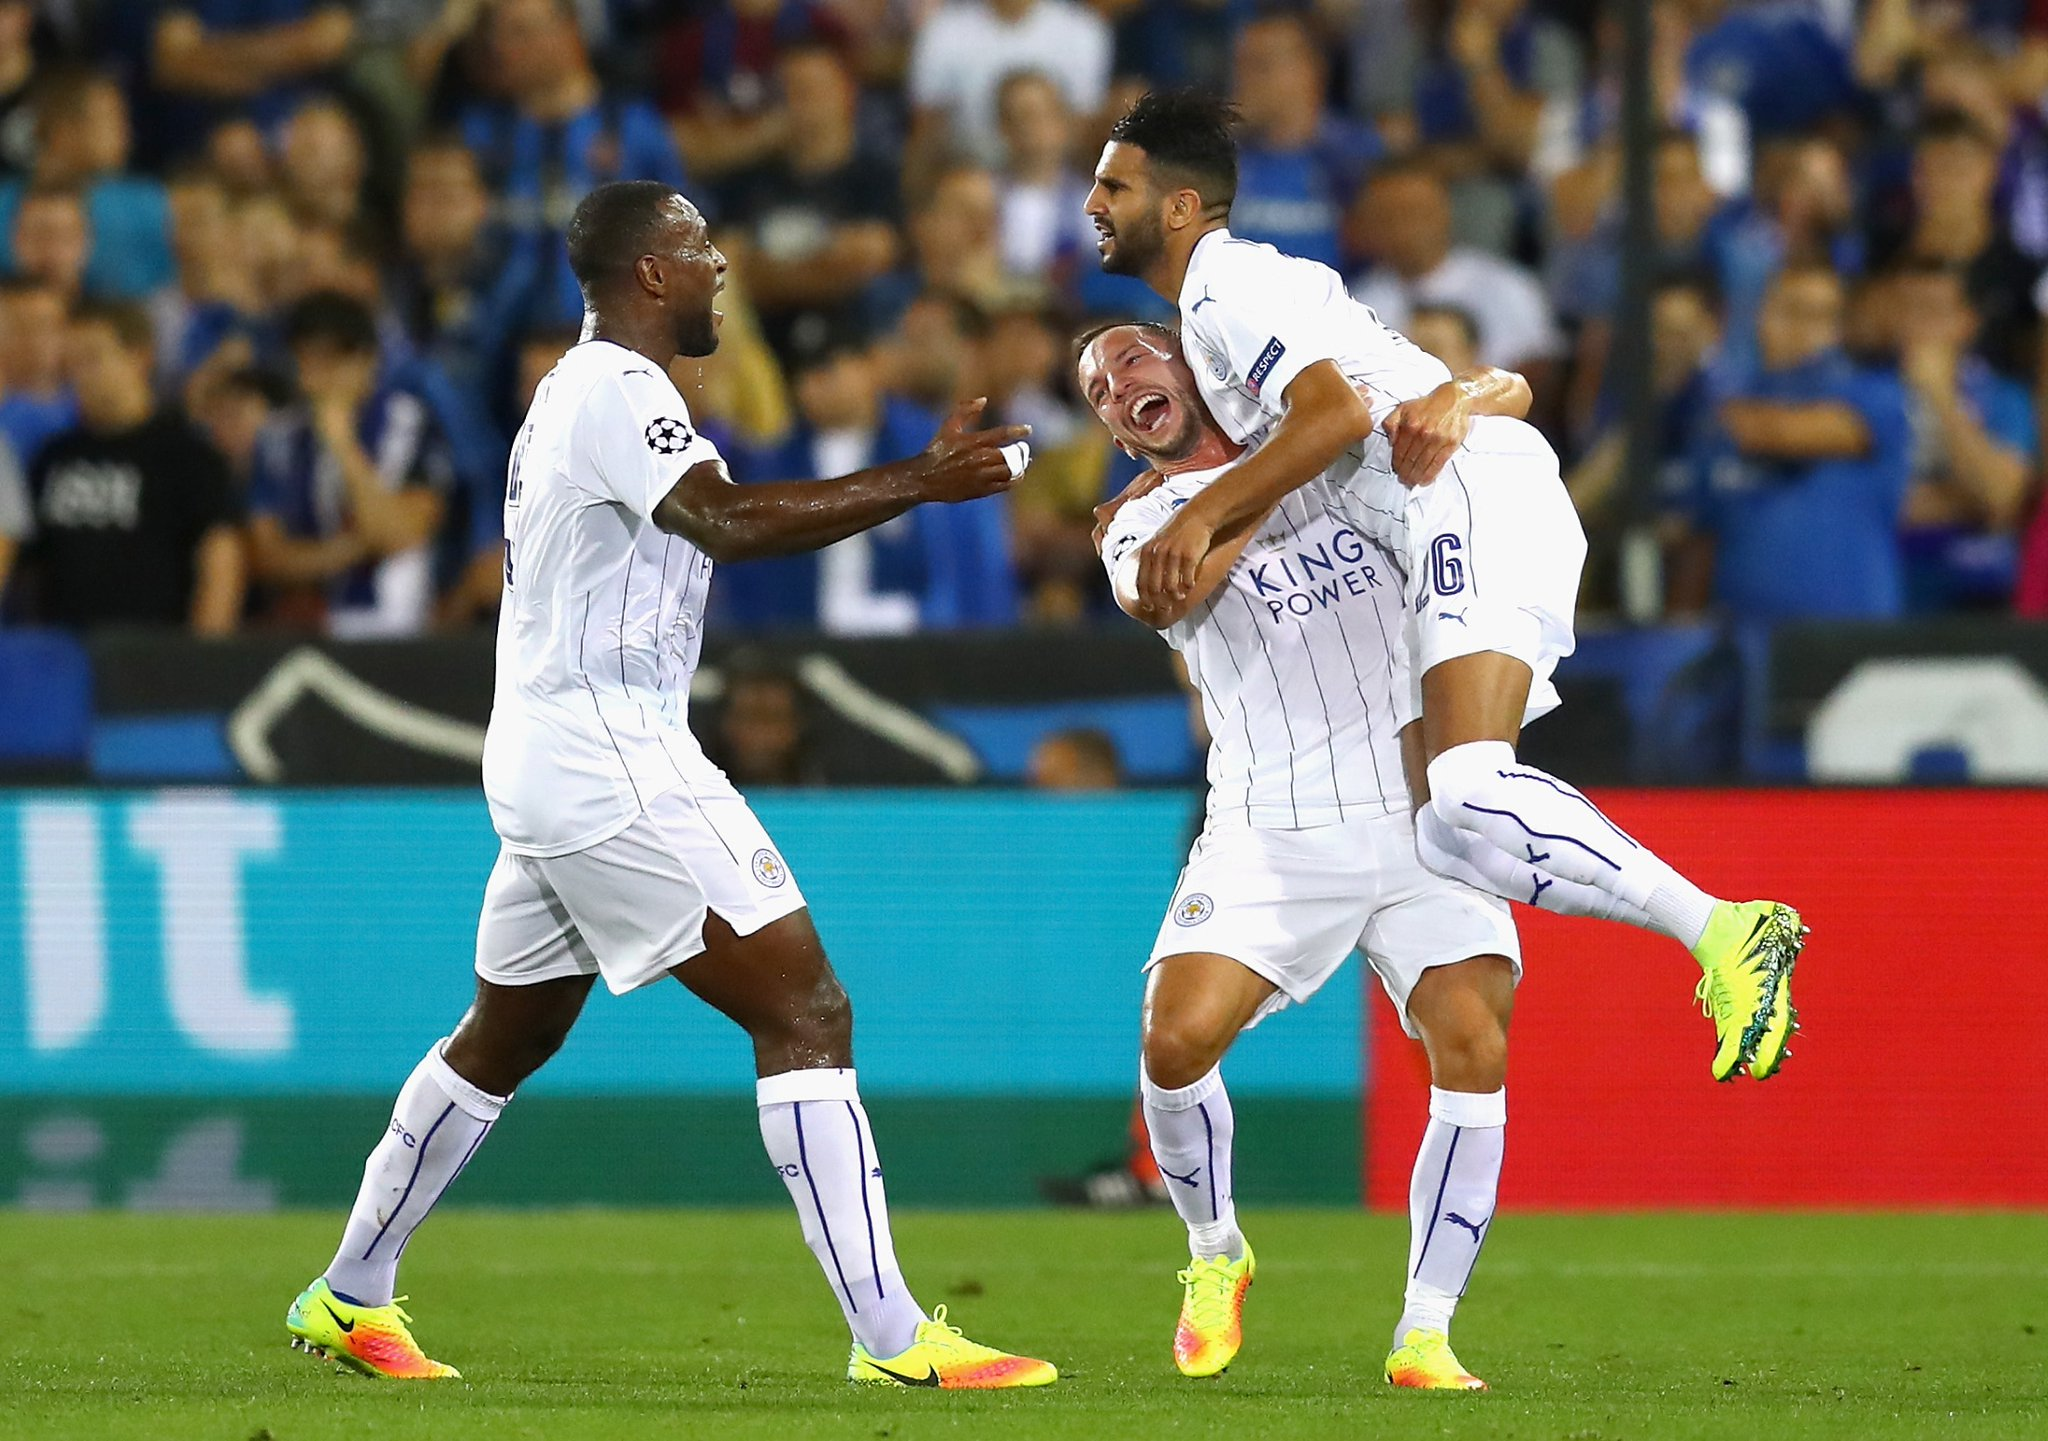 Musa Subbed On As Leicester Win, Ronaldo Rescues Real, Monaco Stun Spurs